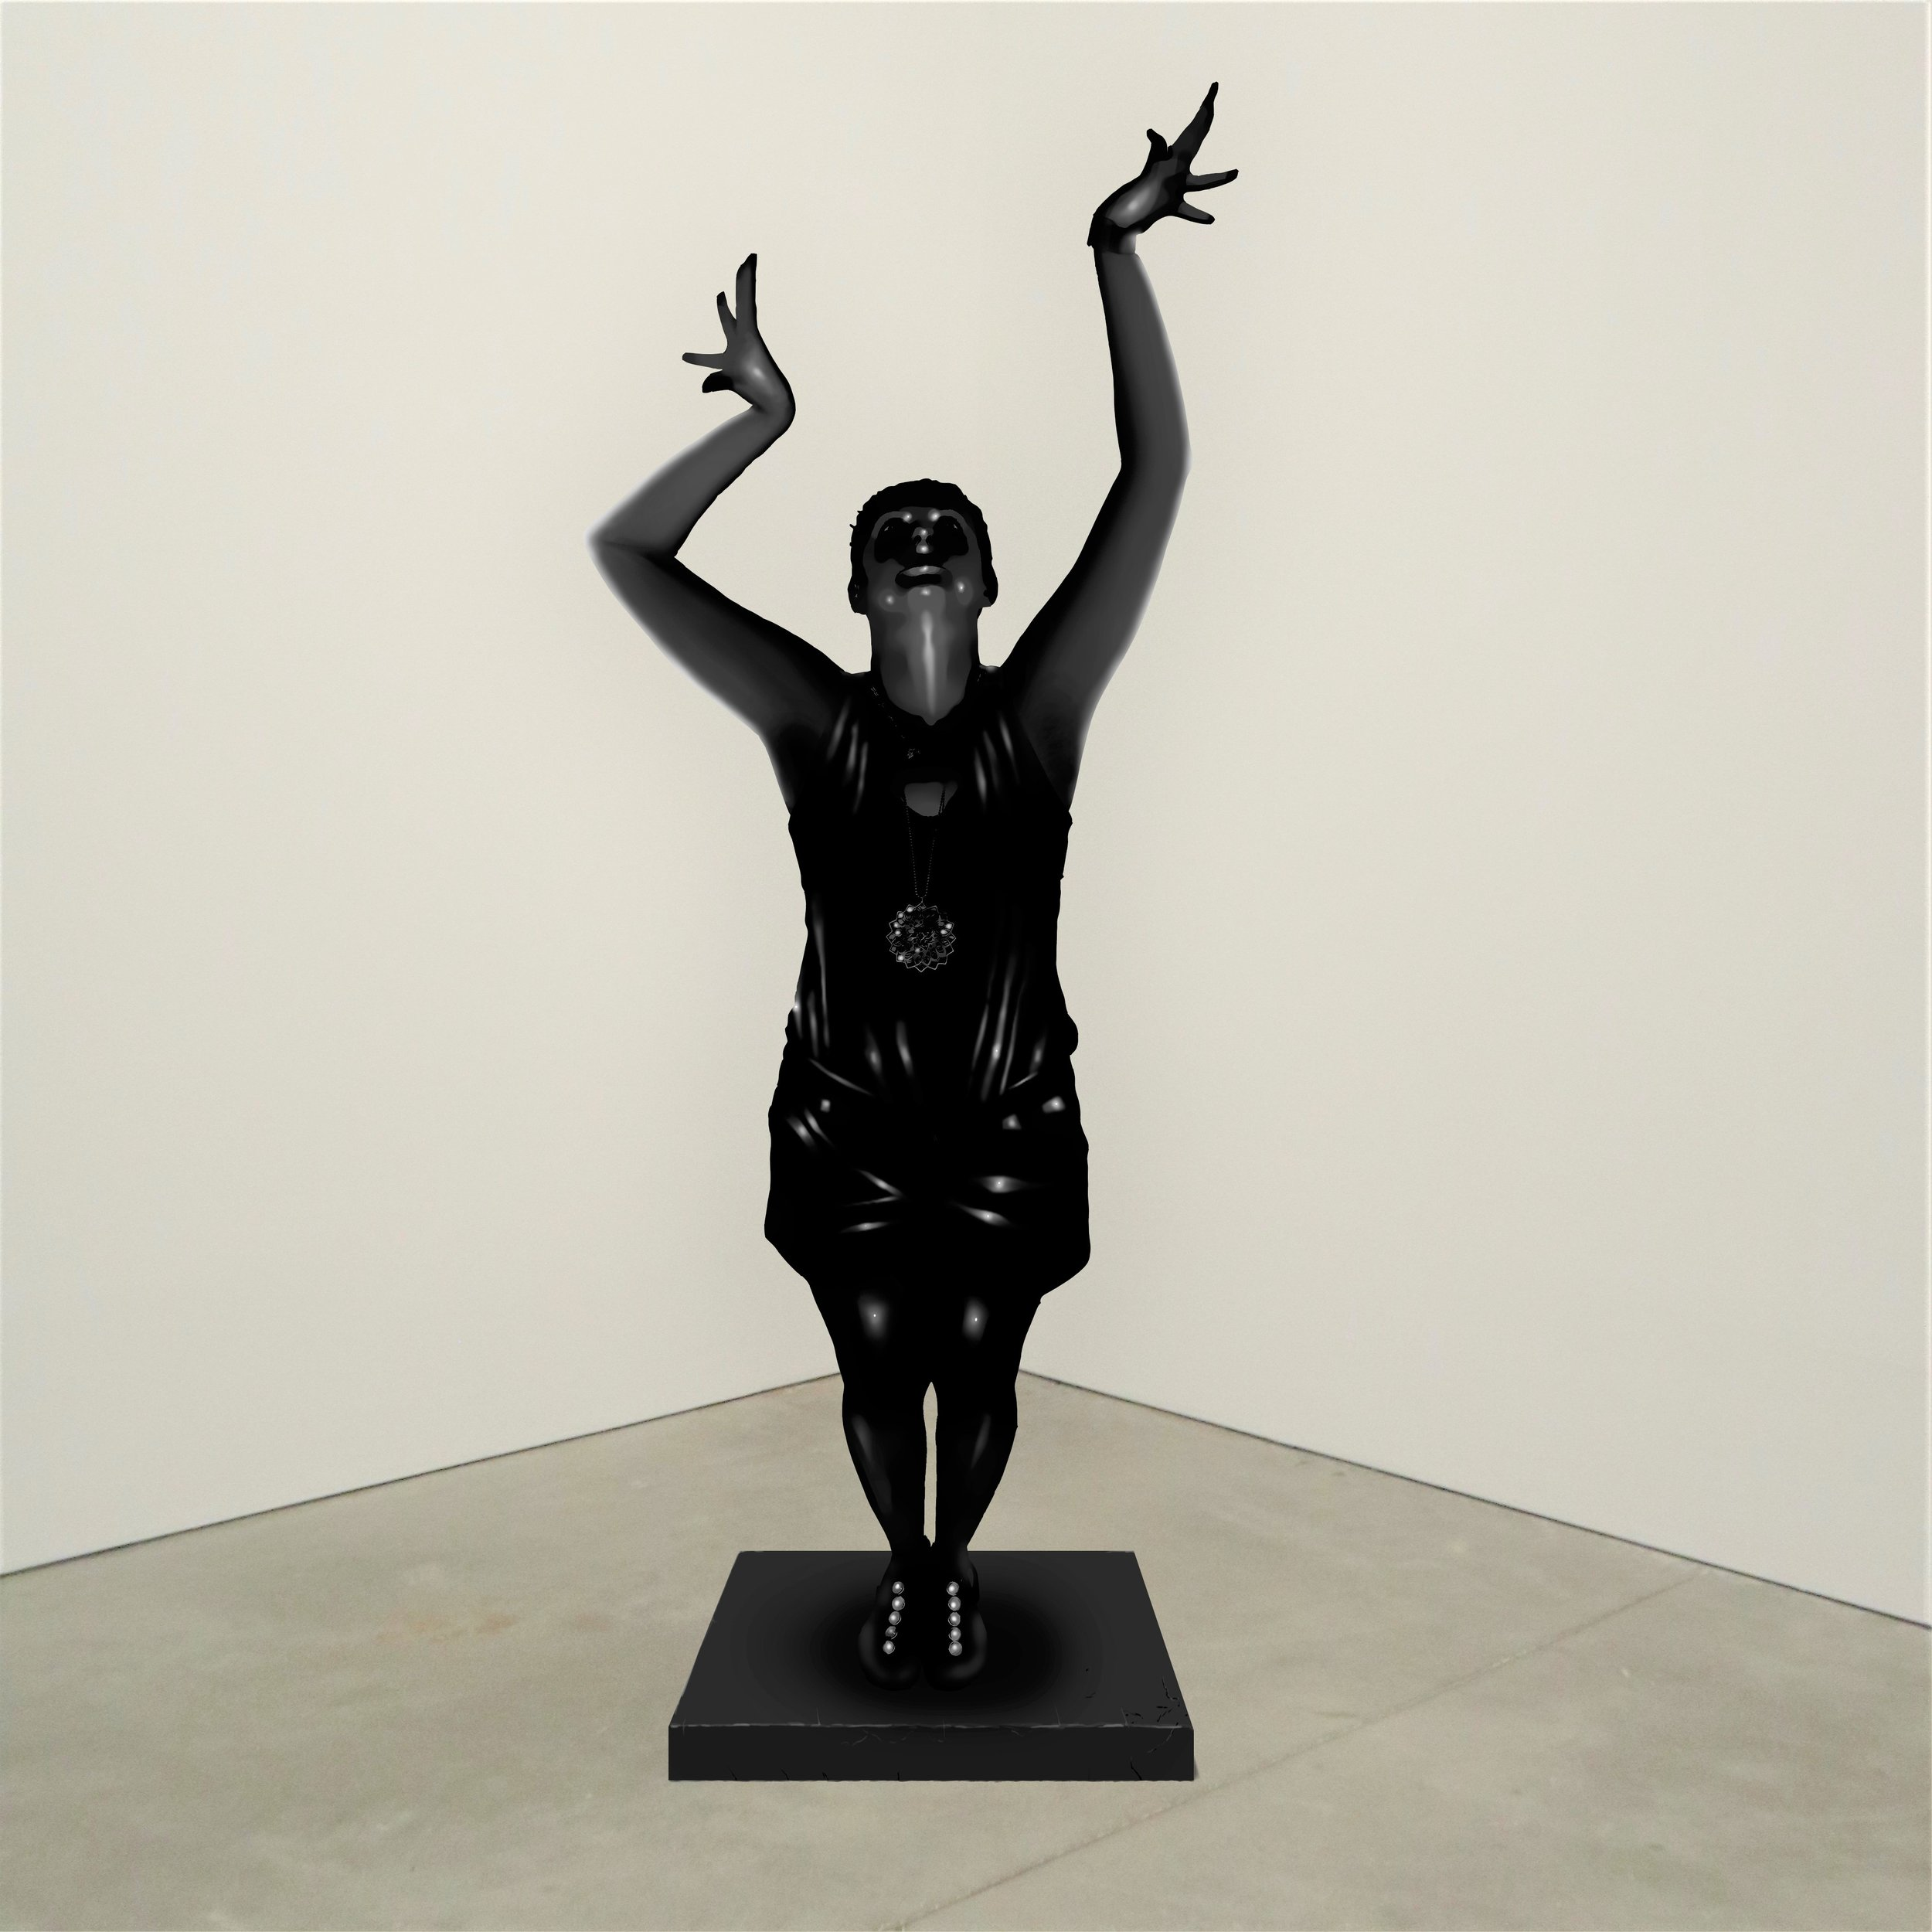 """OAK TREE,"" onyx, Institute of Contemporary Art, Boston   2018  JPG  During an installation at the Institute of Contemporary Art in Boston, viewers were invited to imagine themselves as statues in the ICA's permanent collection. Participants were photographed posing as a statue they felt represented themselves, created a name for their fictional statue, and selected a stone from which their statue would be made. Professional and amateur digital artists were commissioned to create renderings of the statues, which were superimposed on photos of the ICA's permanent collection gallery space."